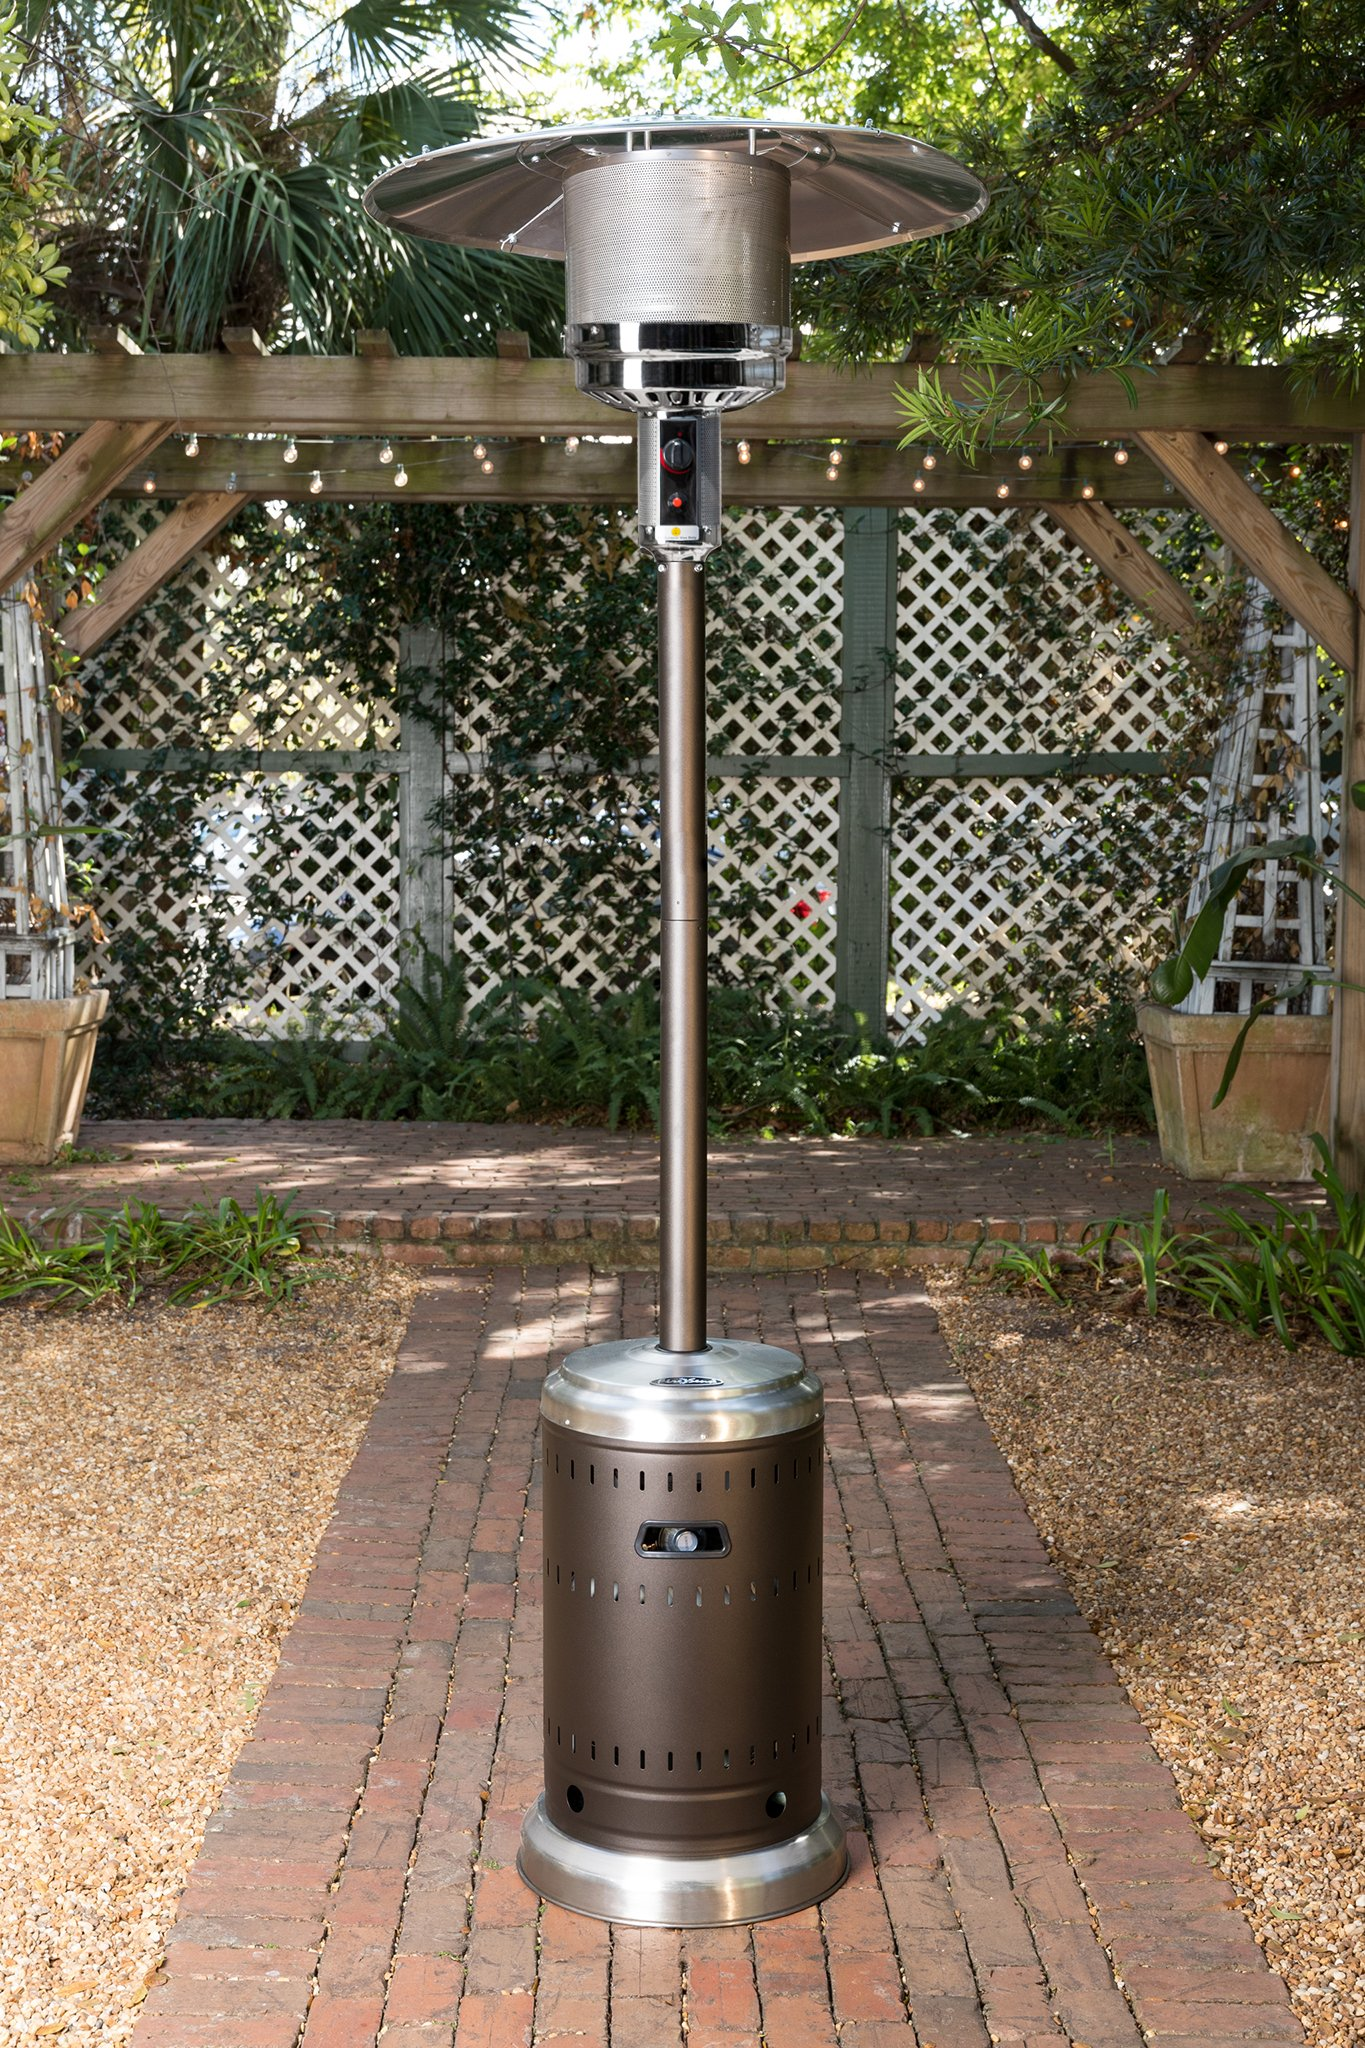 Ash and Stainless Steel Finish Patio Heater - Fire Sense